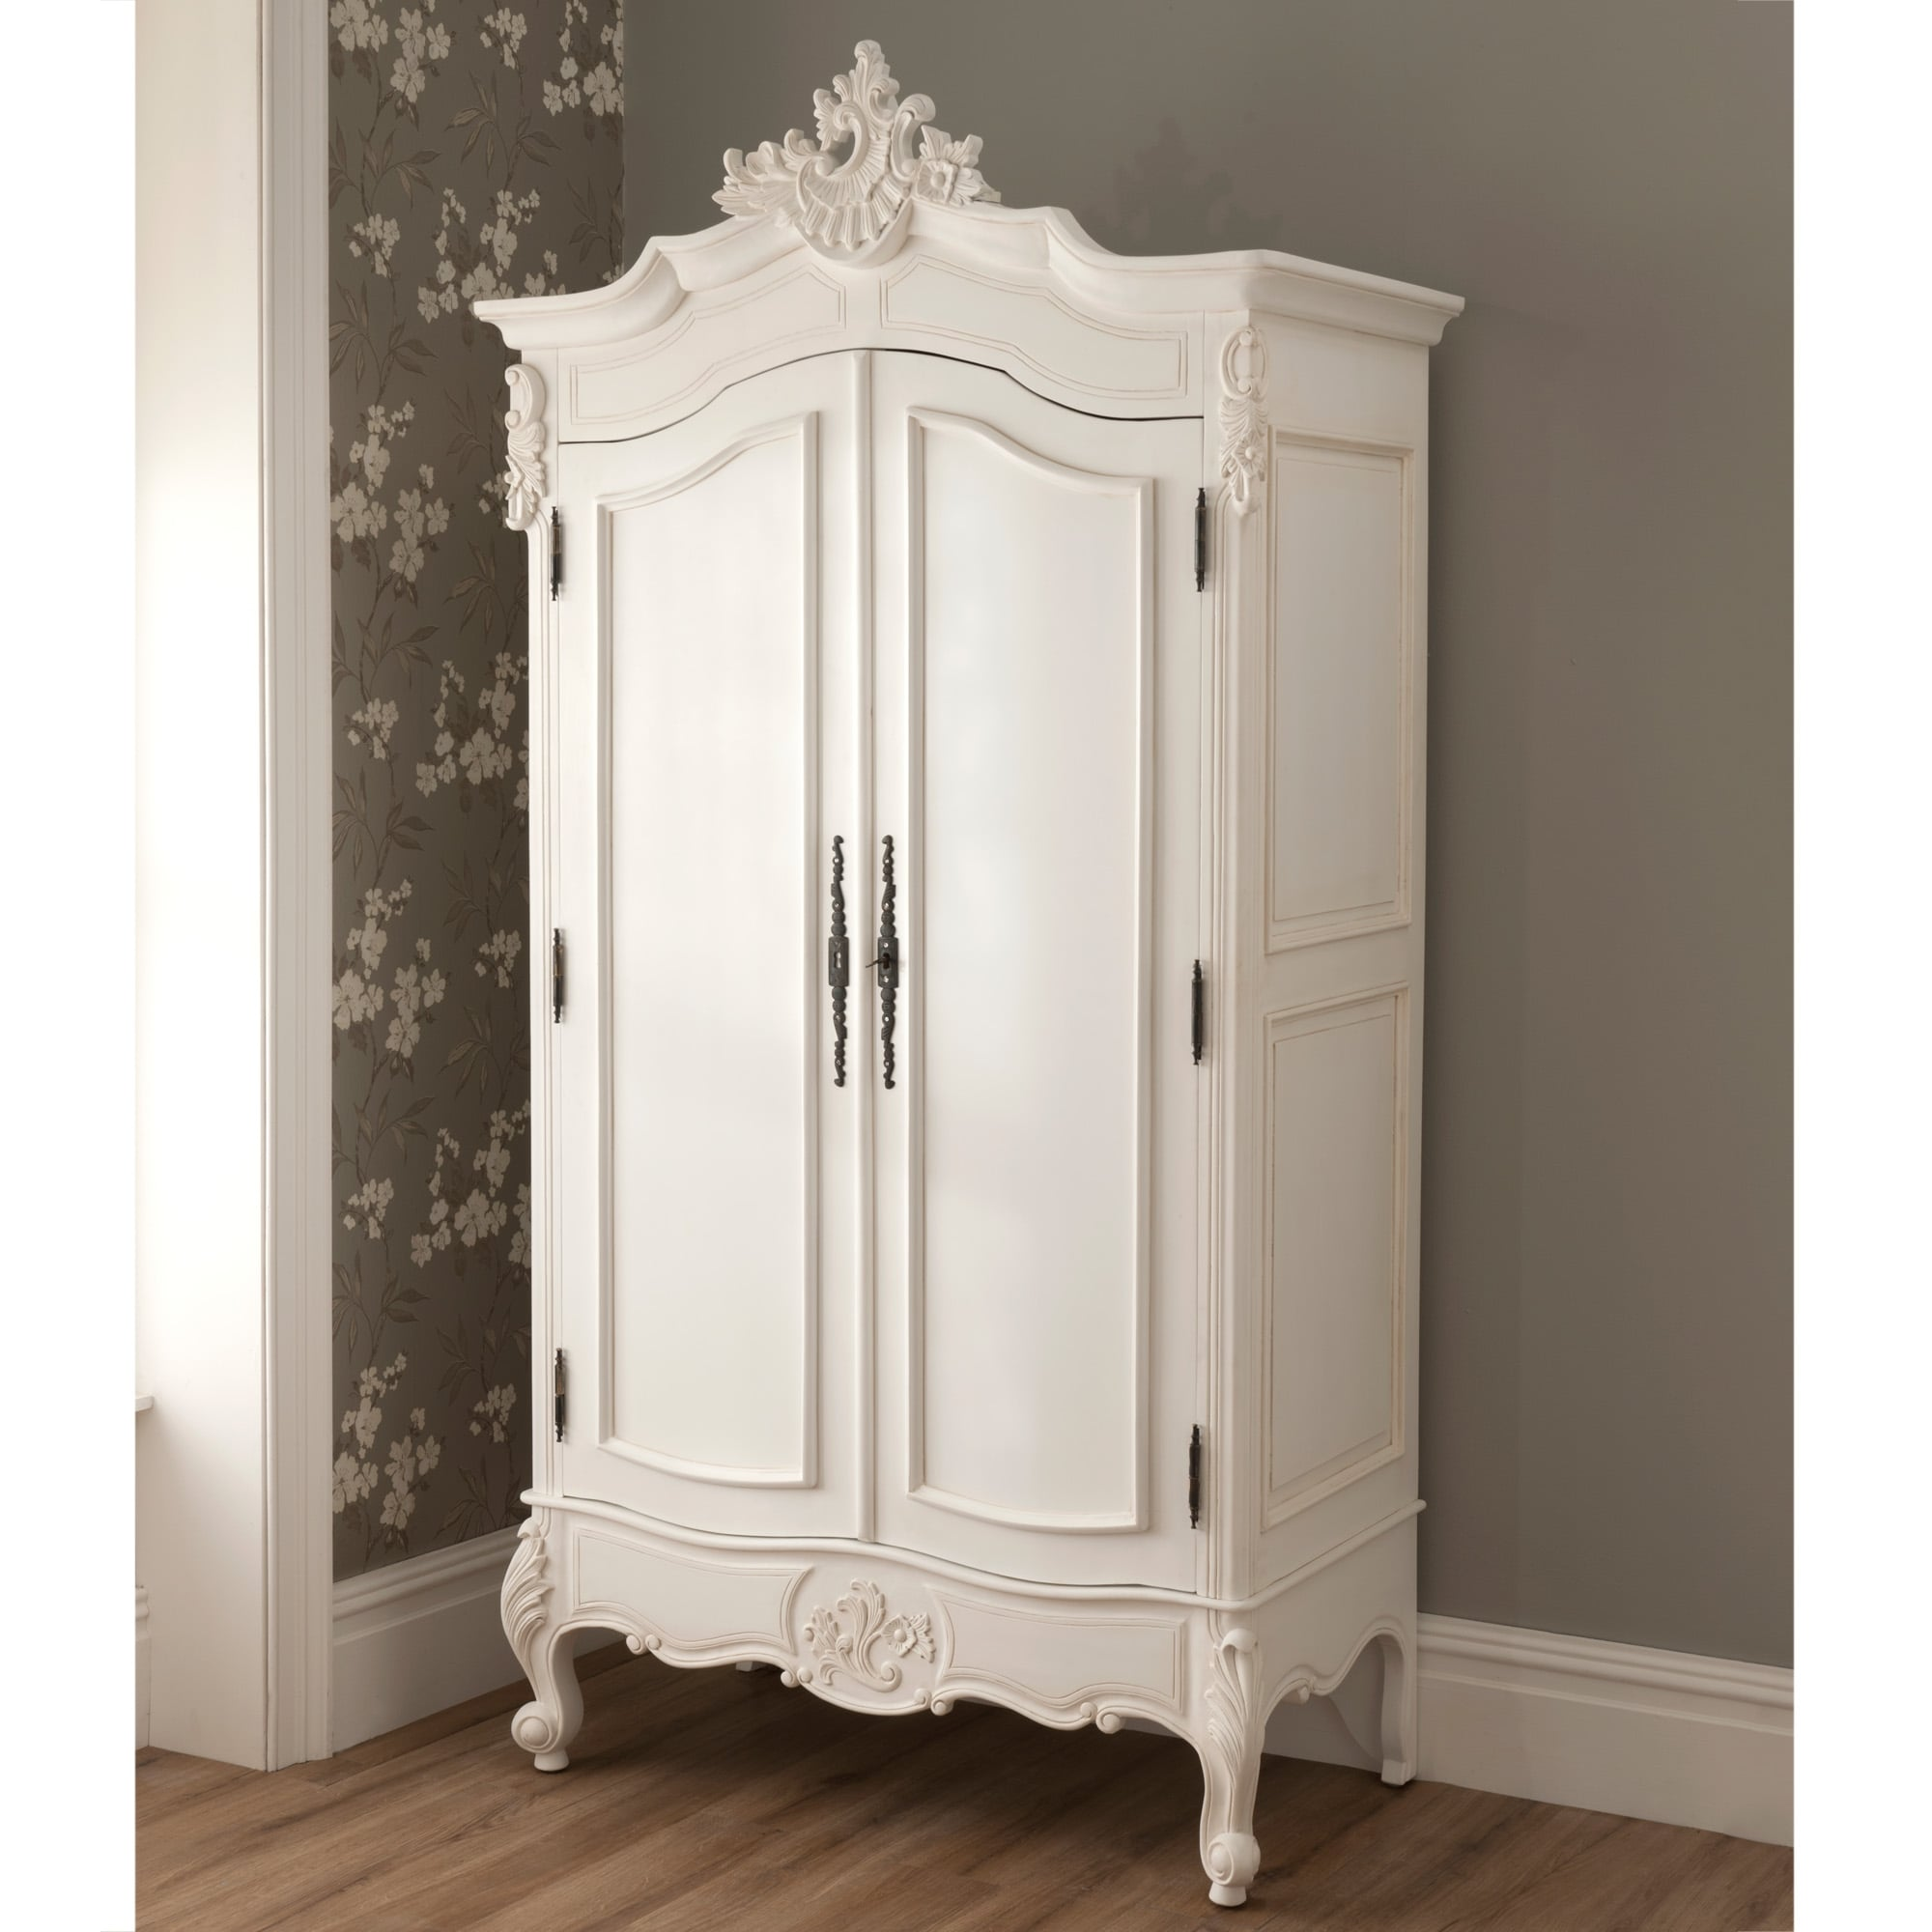 Modern La Rochelle Antique French Style Wardrobe antique french wardrobes